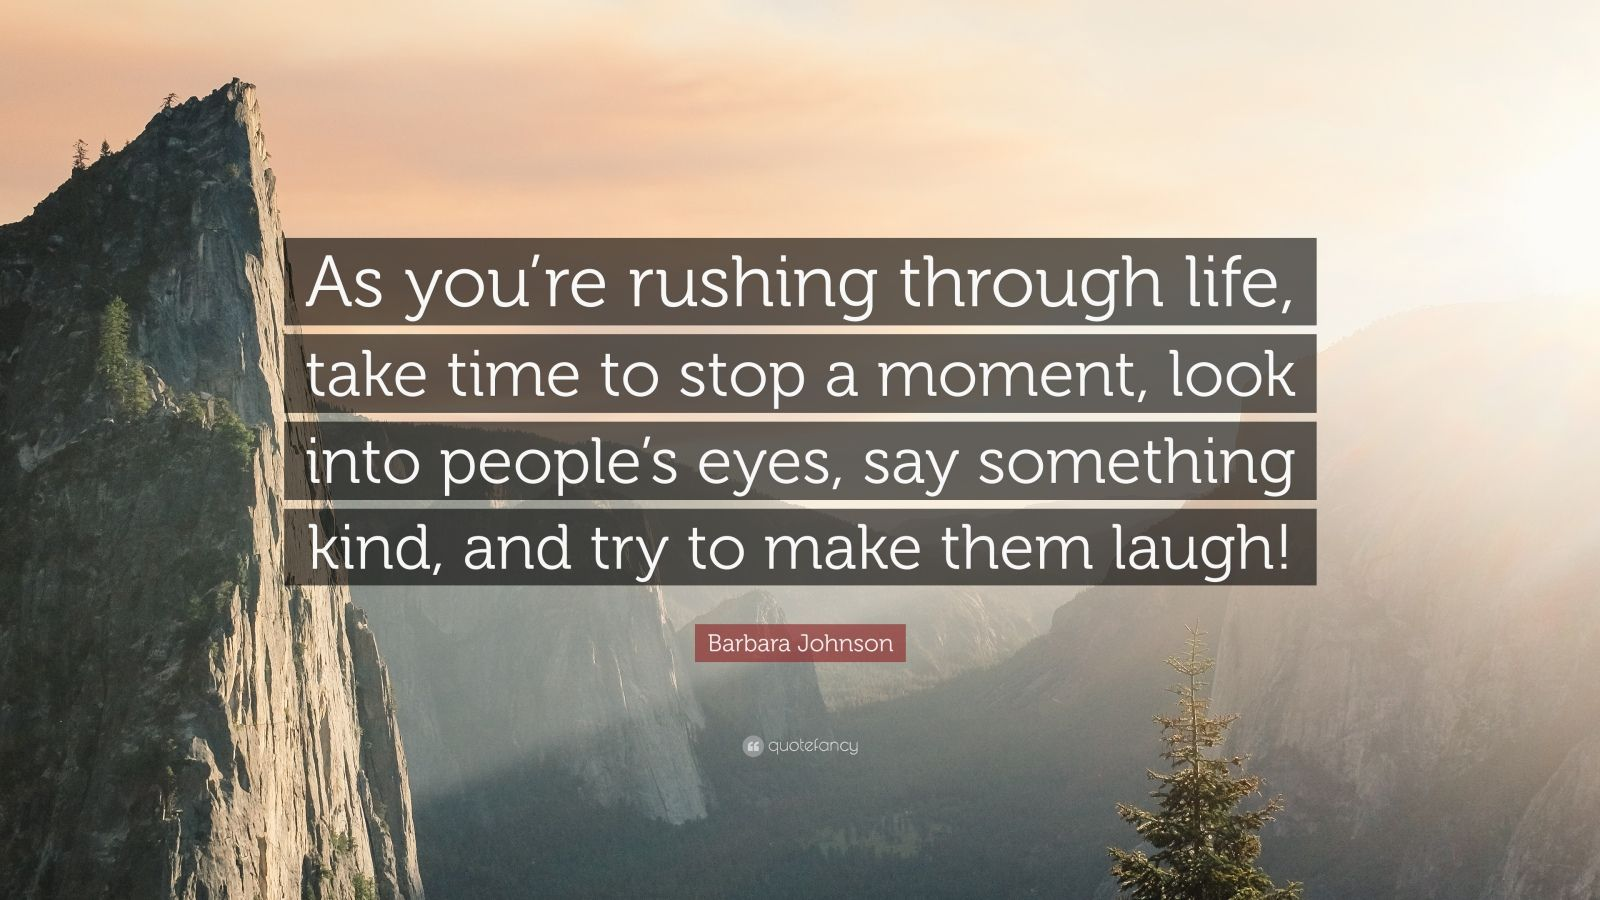 Quotes About Rushing Life: Barbara Johnson Quotes (56 Wallpapers)